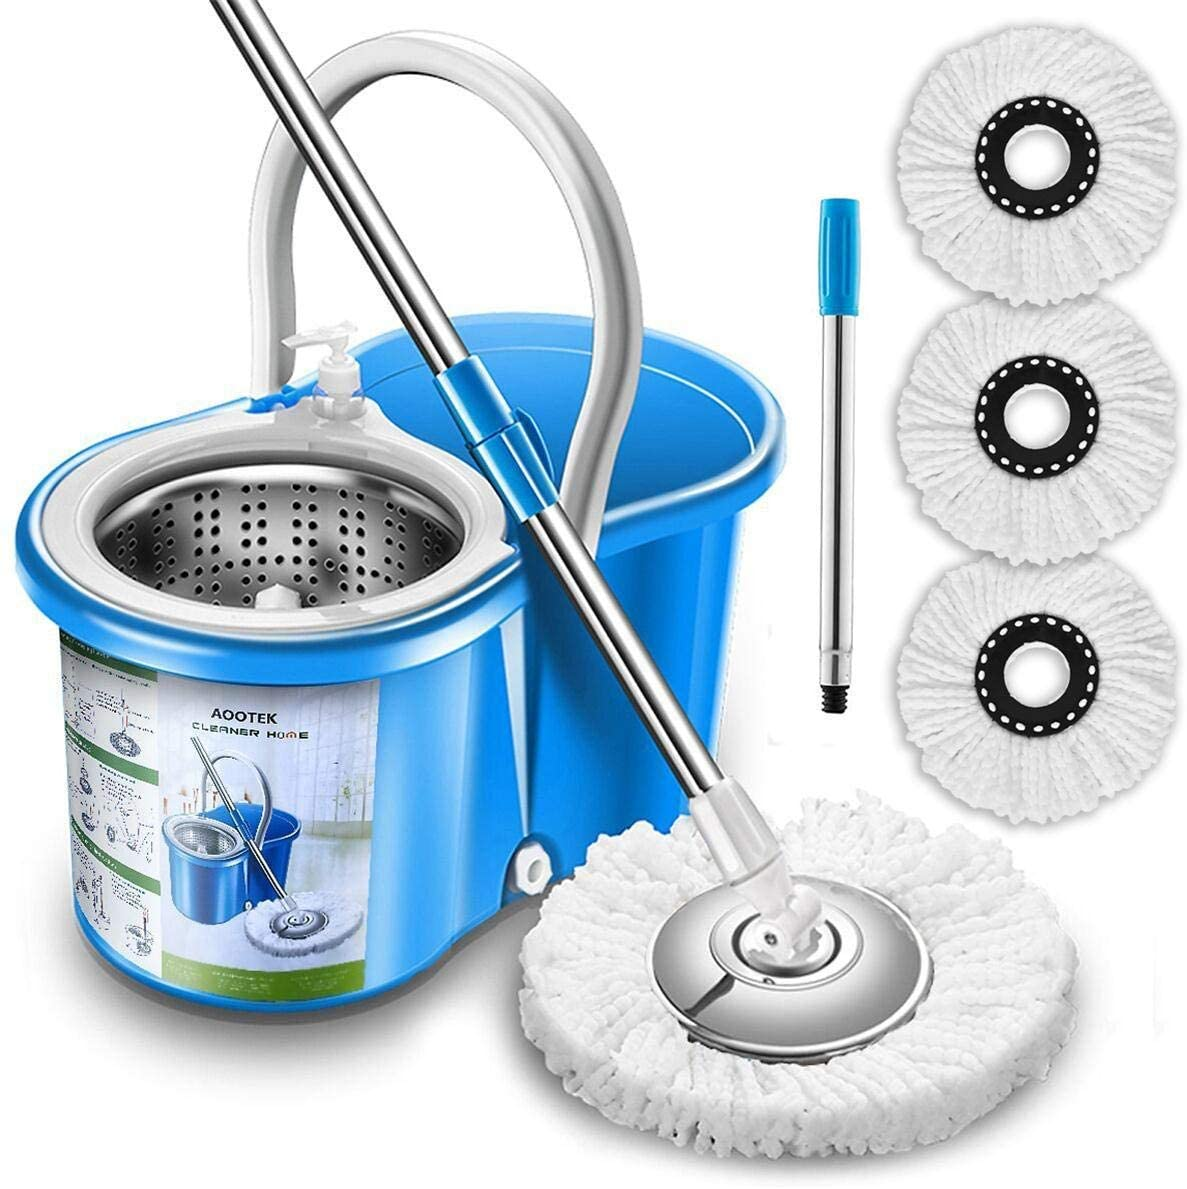 Review of Aootek Upgraded Stainless Steel Deluxe 360 Spin Mop